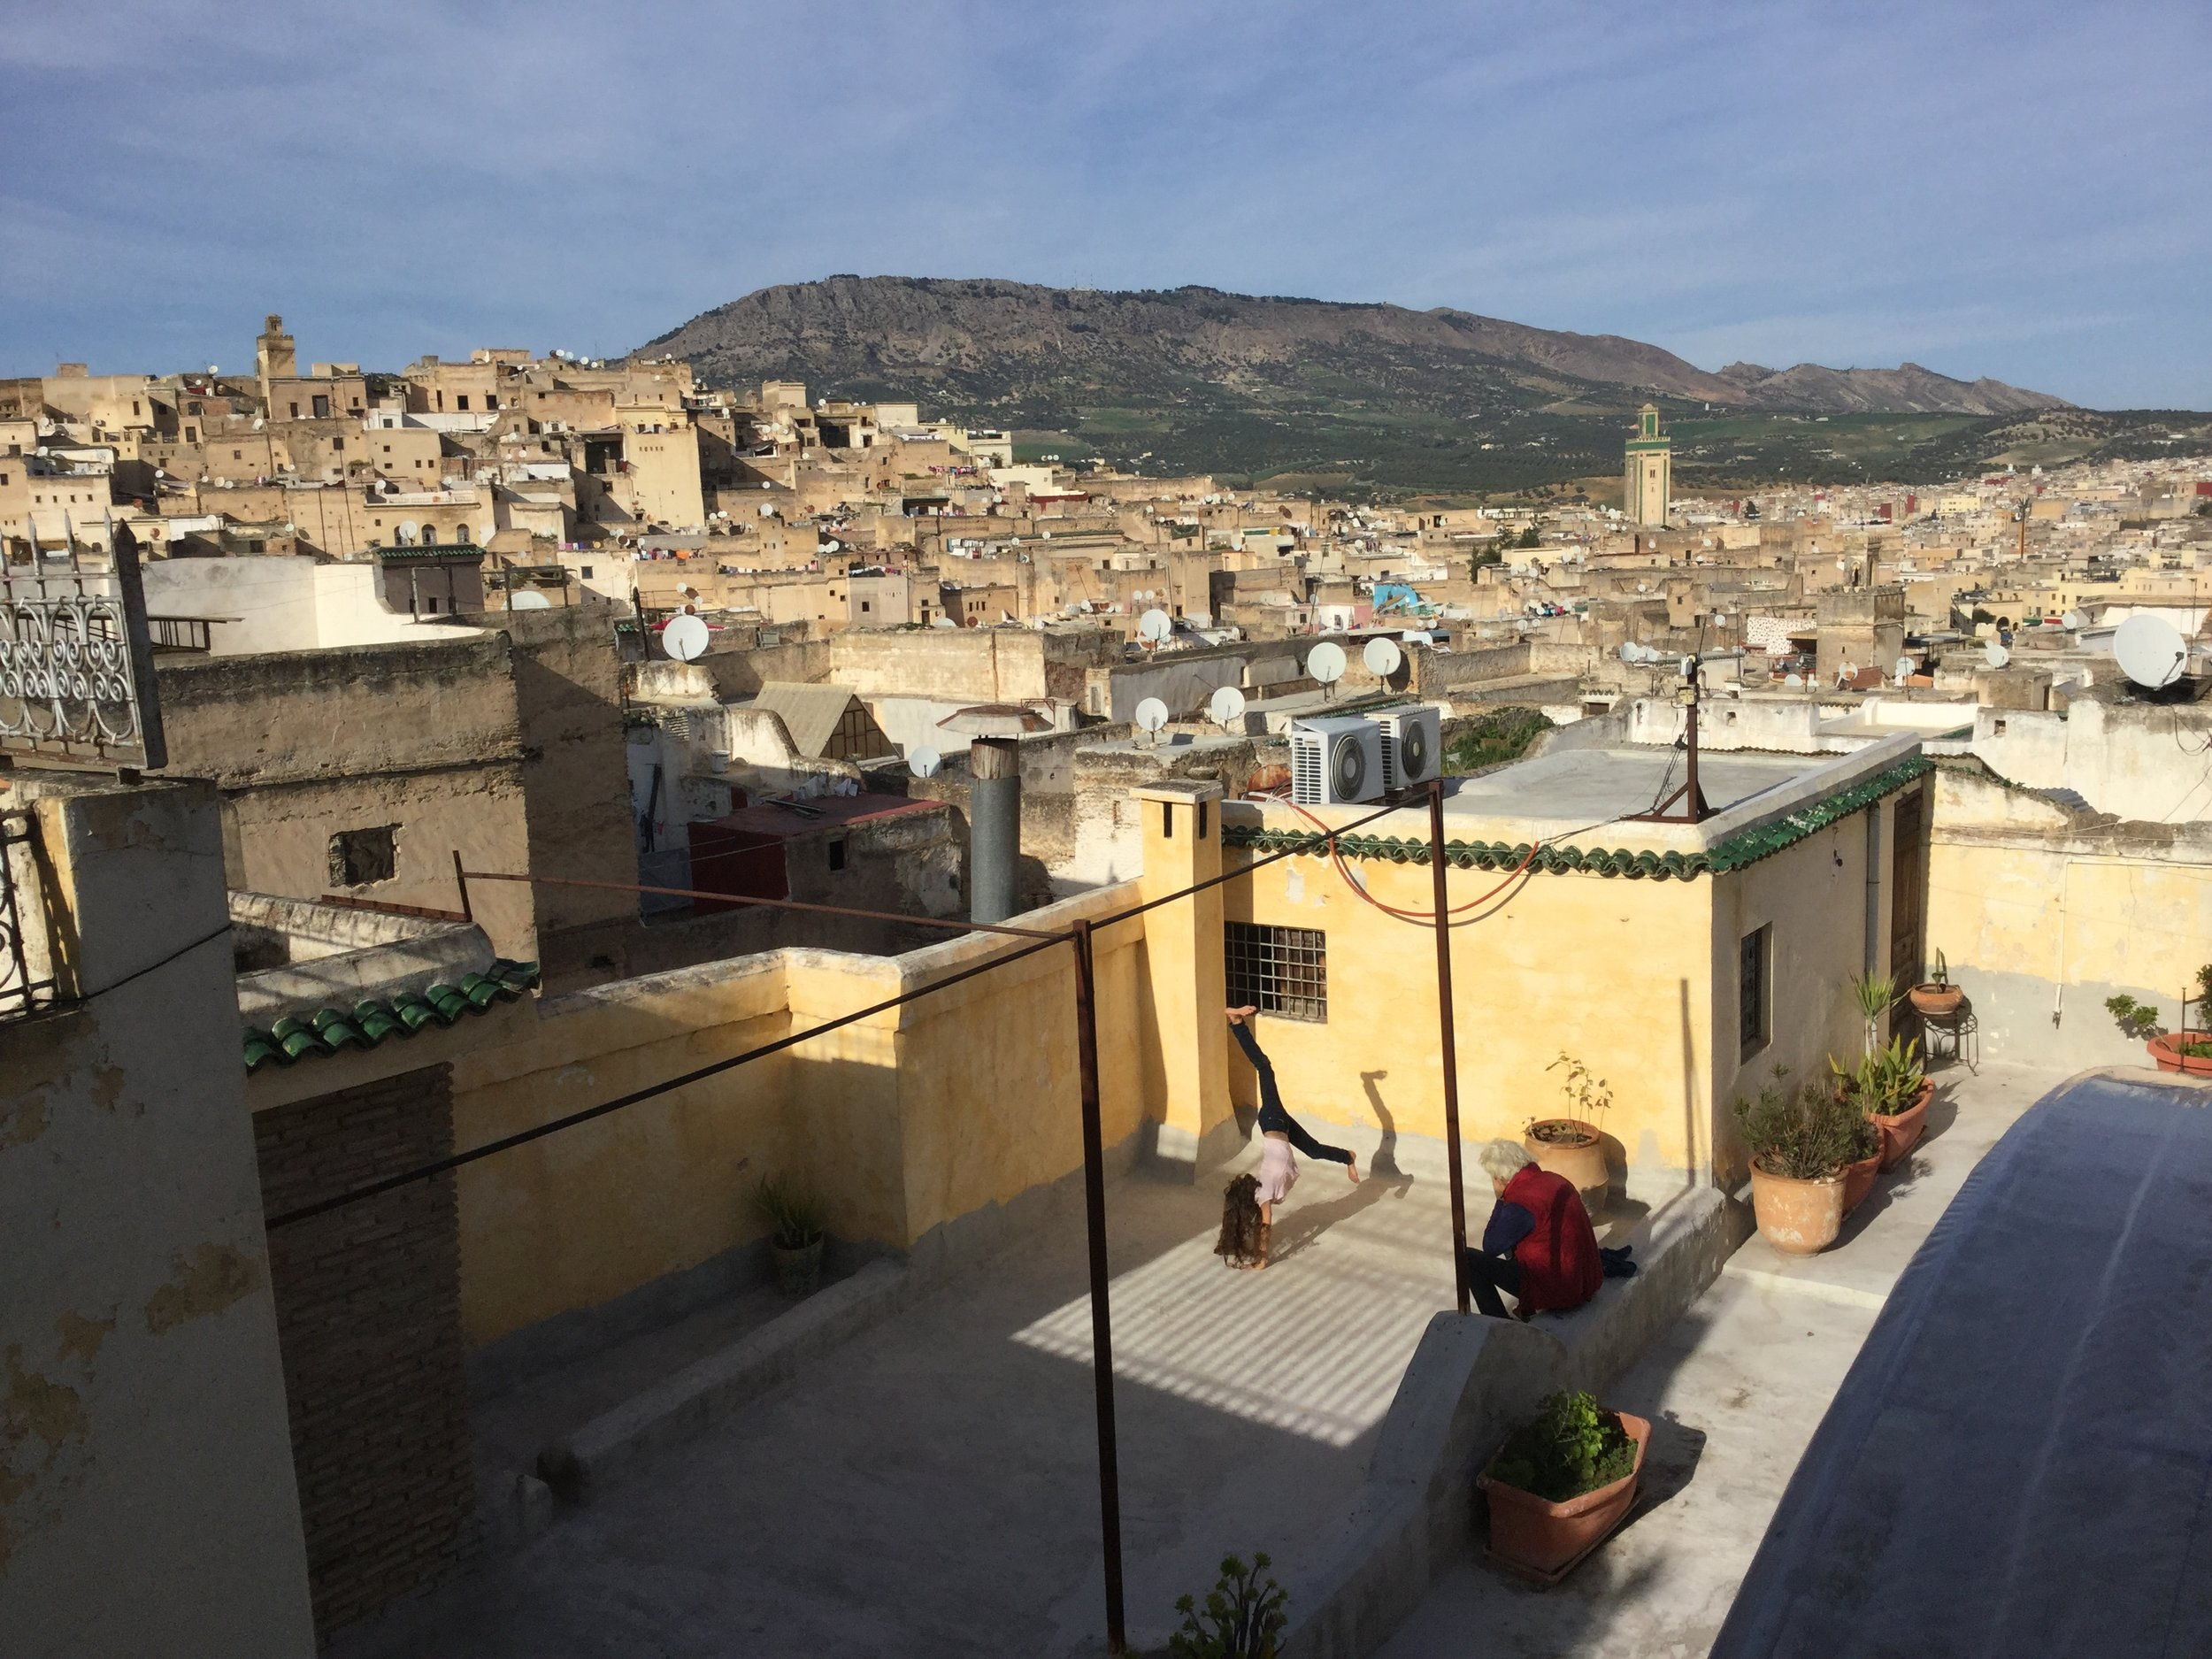 View from the roof patio of our riad. True to style, Lili is practicing her cartwheels.